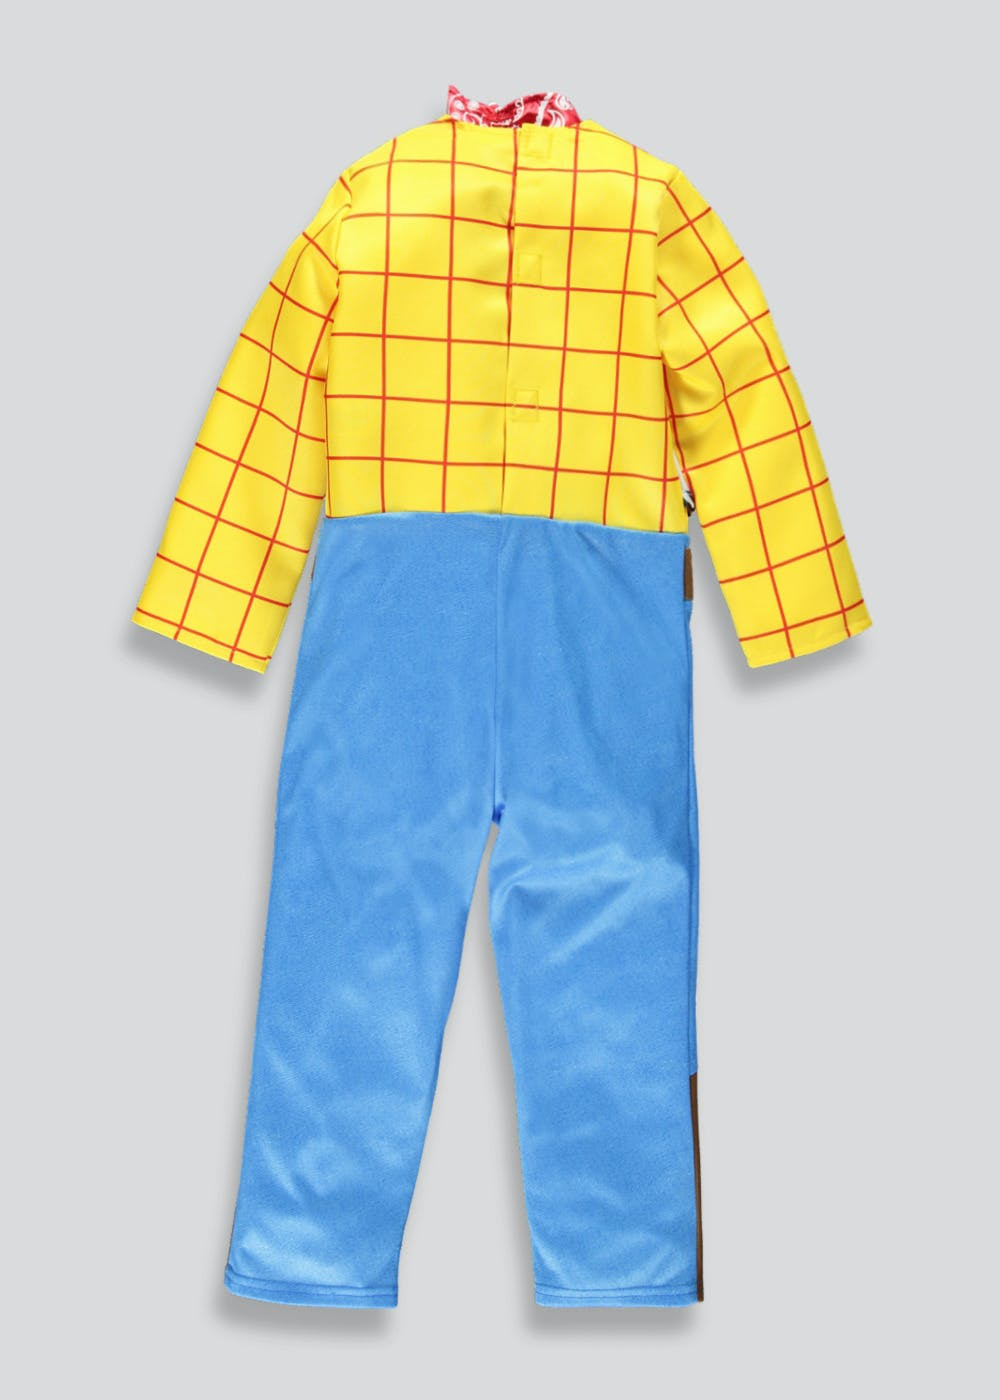 ea69a7583 Kids Disney Toy Story Woody Fancy Dress Costume (3-9yrs) – Yellow ...